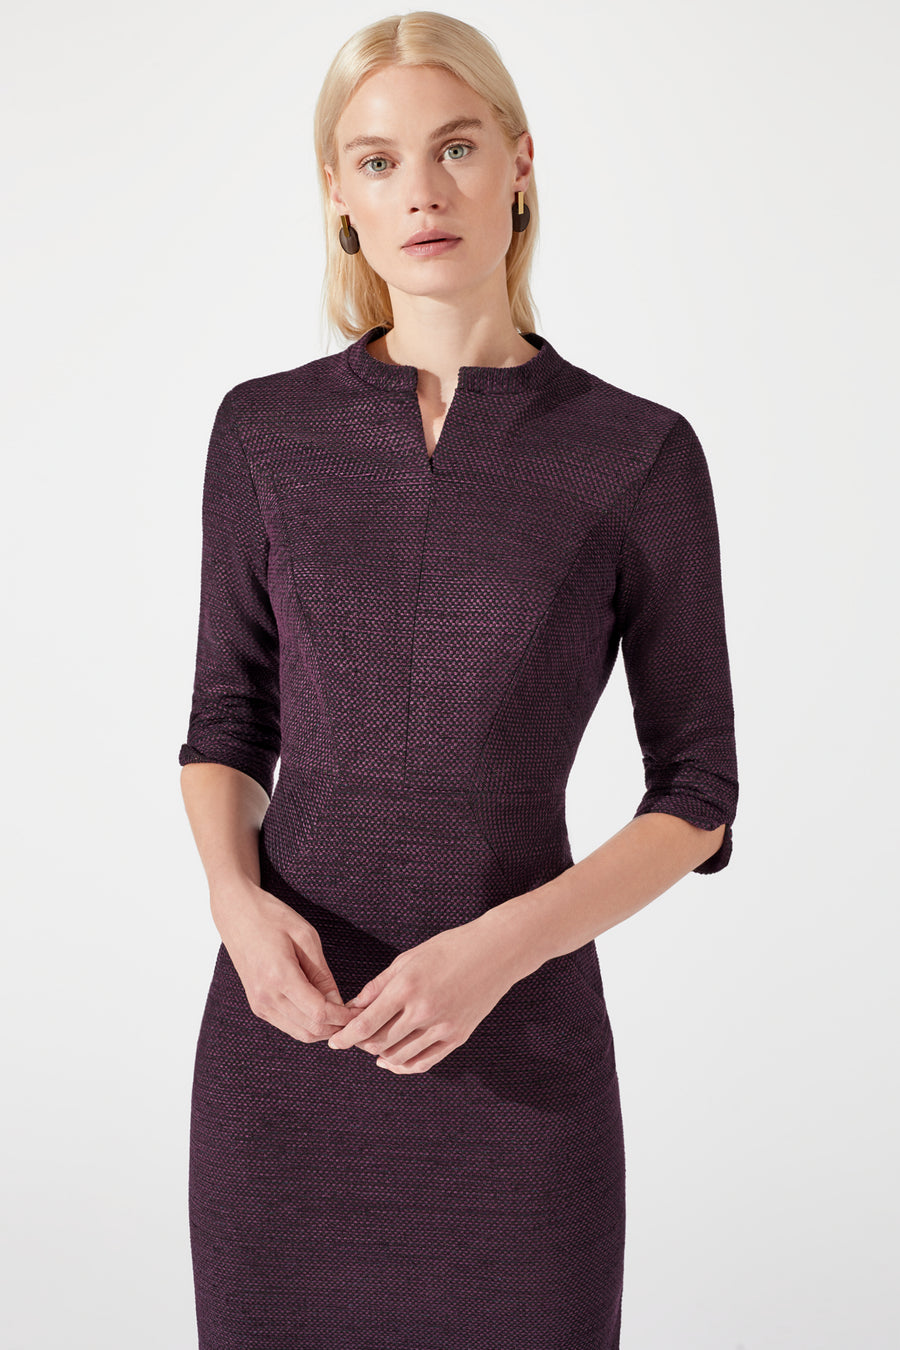 Waterloo Damson Jacquard Dress